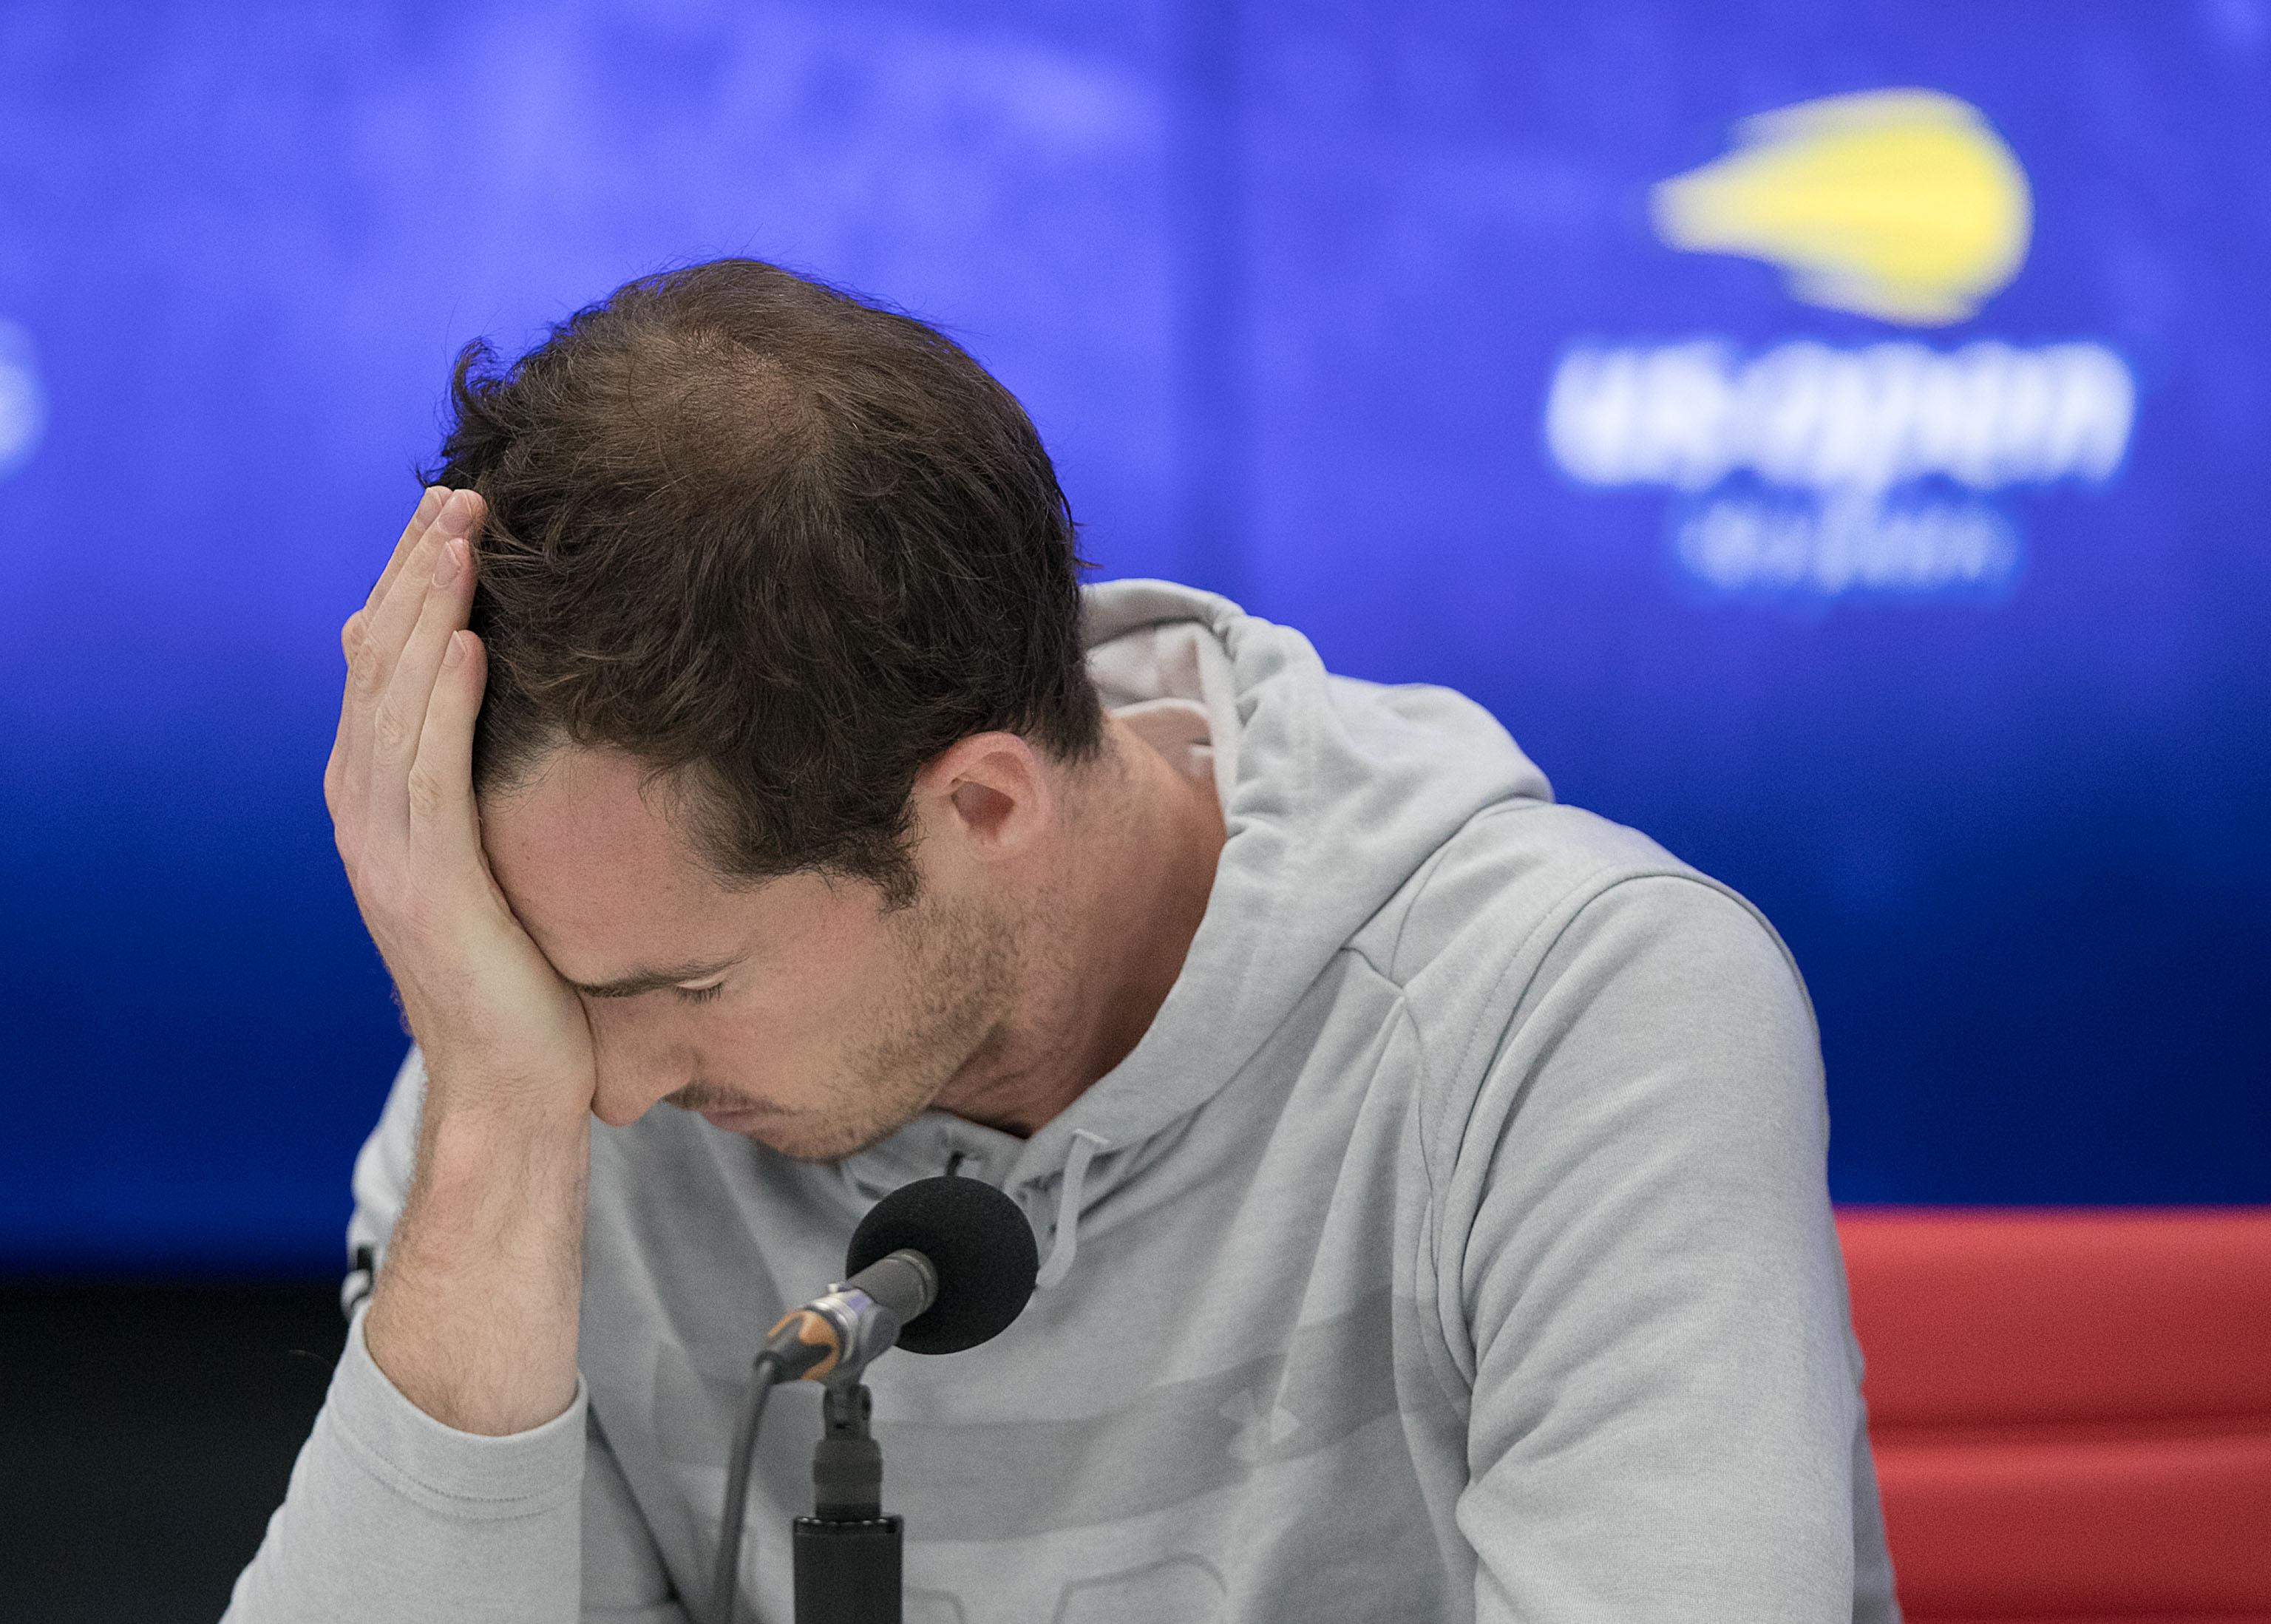 Andy Murray has had a tough go of things trying to get back from injury